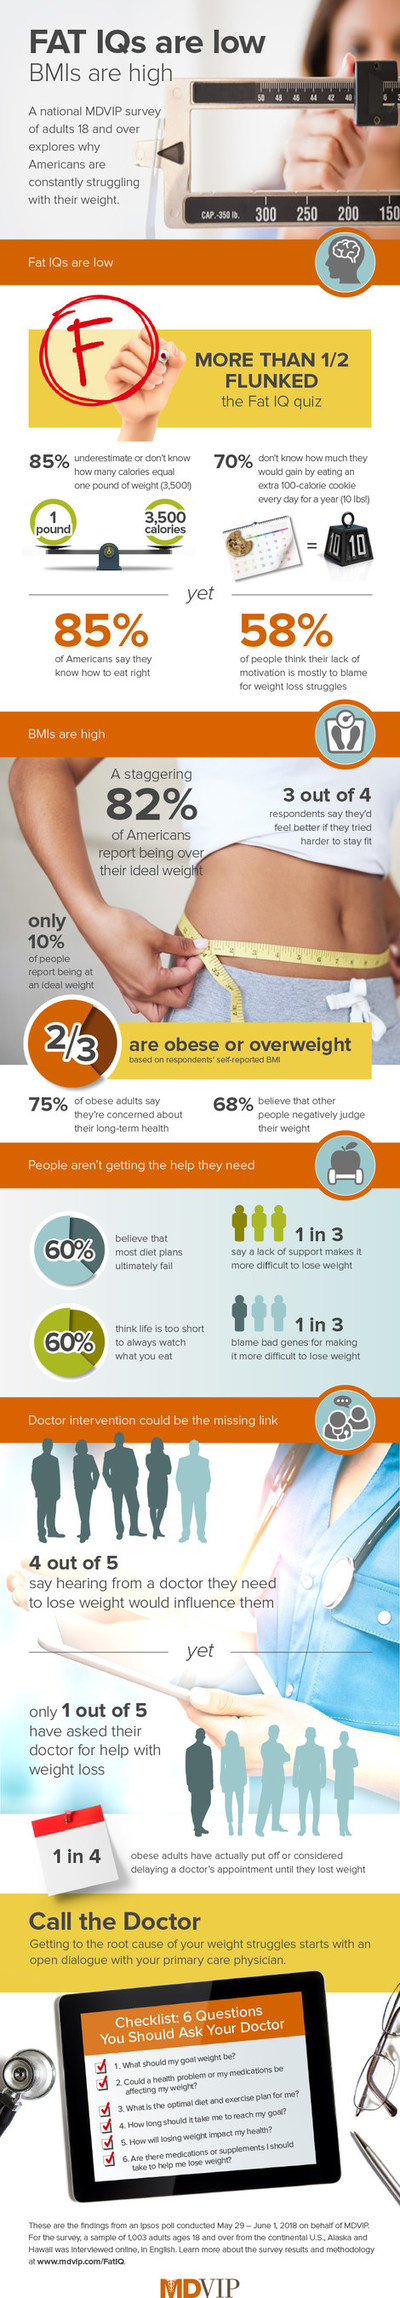 MDVIP Fat IQ Survey Infographic: Most Americans say they know how to eat right, but more than half failed a basic quiz about dietary facts and weight loss, according to a new survey conducted by MDVIP and Ipsos Public Affairs. (Credit: MDVIP)